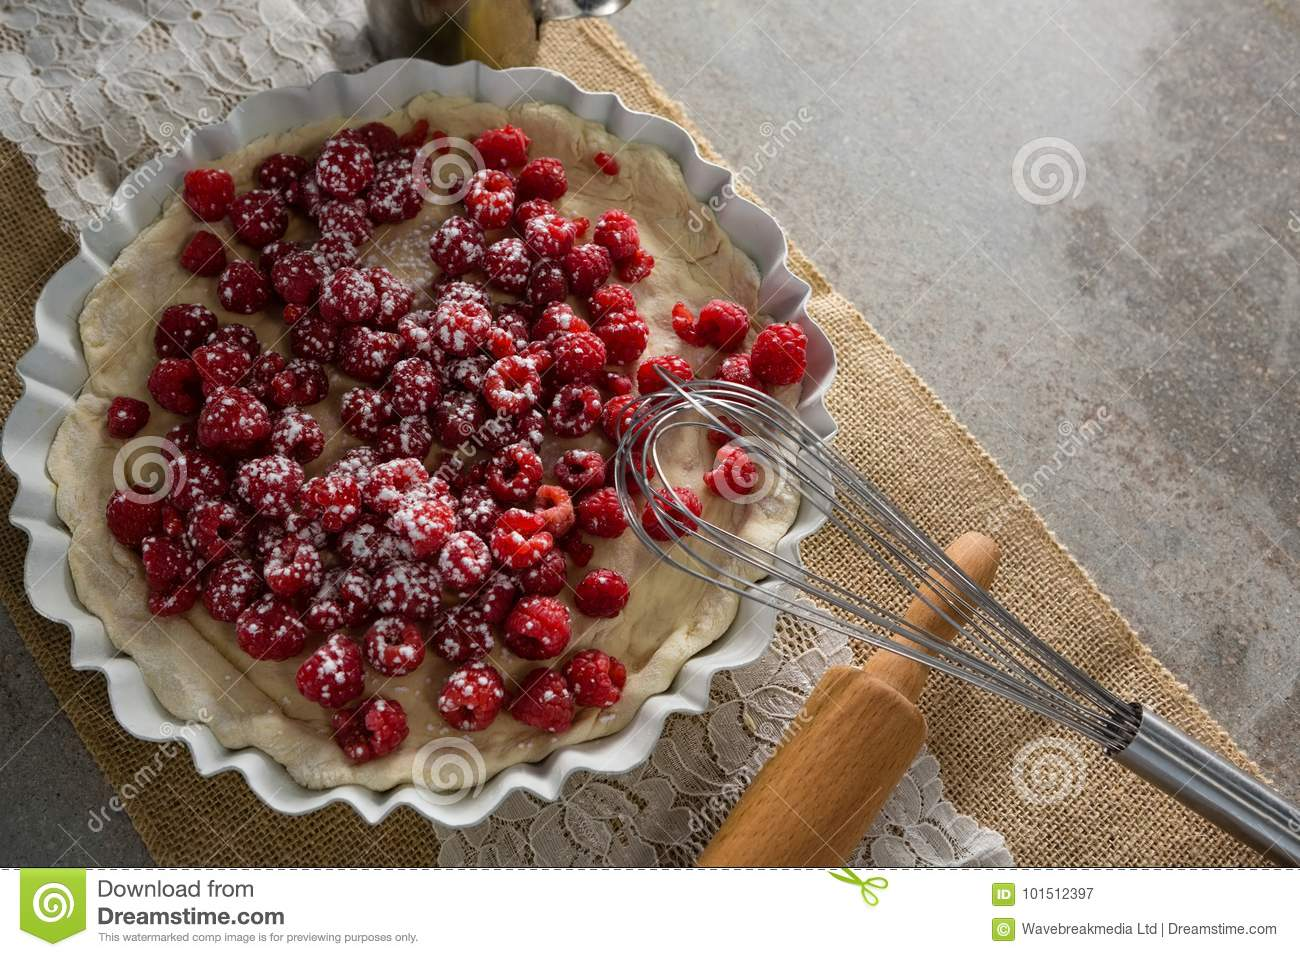 Red berries on tart with whisker and rolling pin